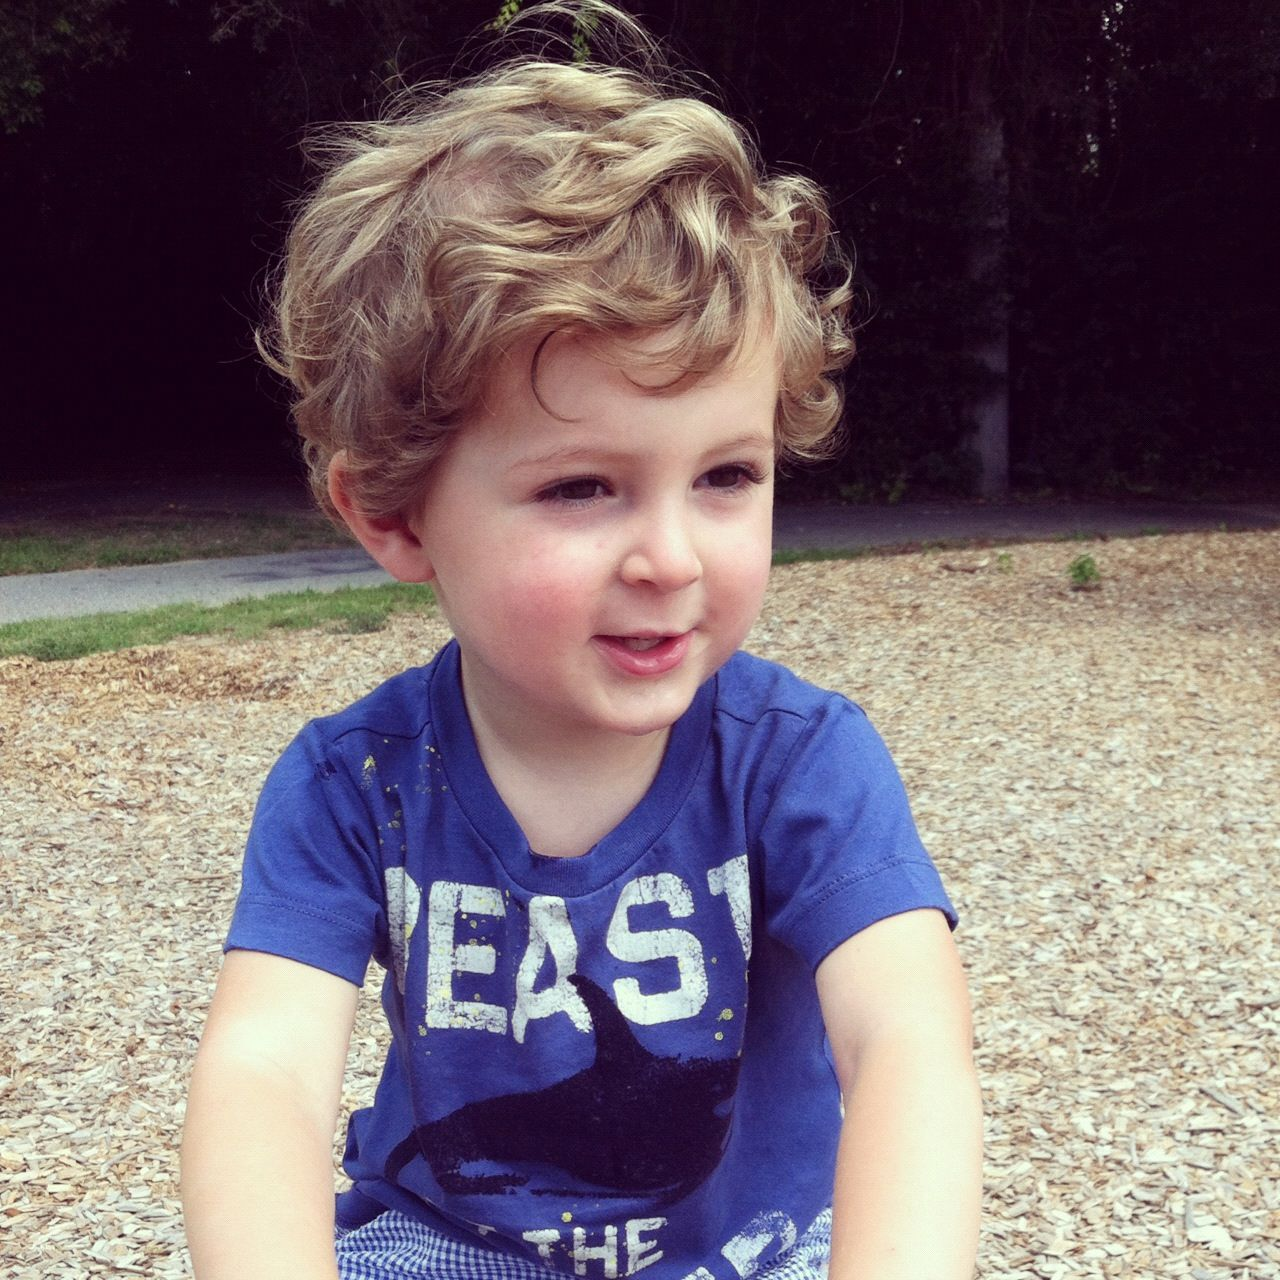 Boy like haircuts cute little boy  lilu kiddos   pinterest  girl hair